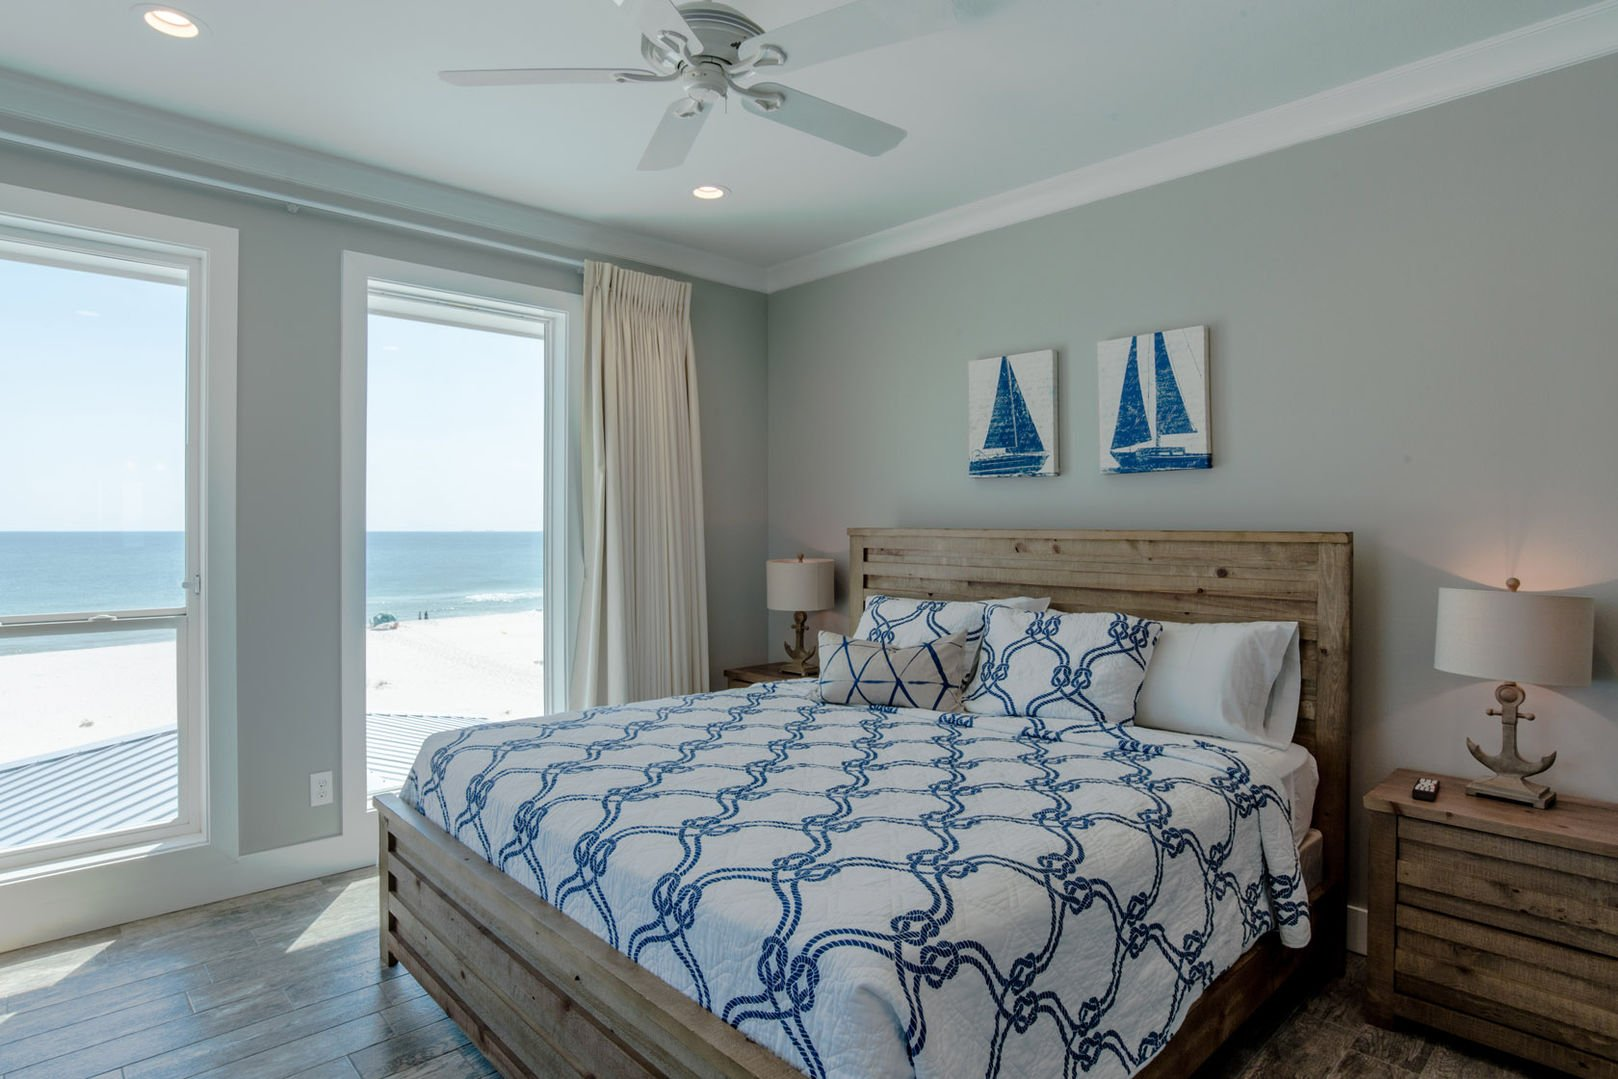 Bedroom 4 Features Nautical Elements